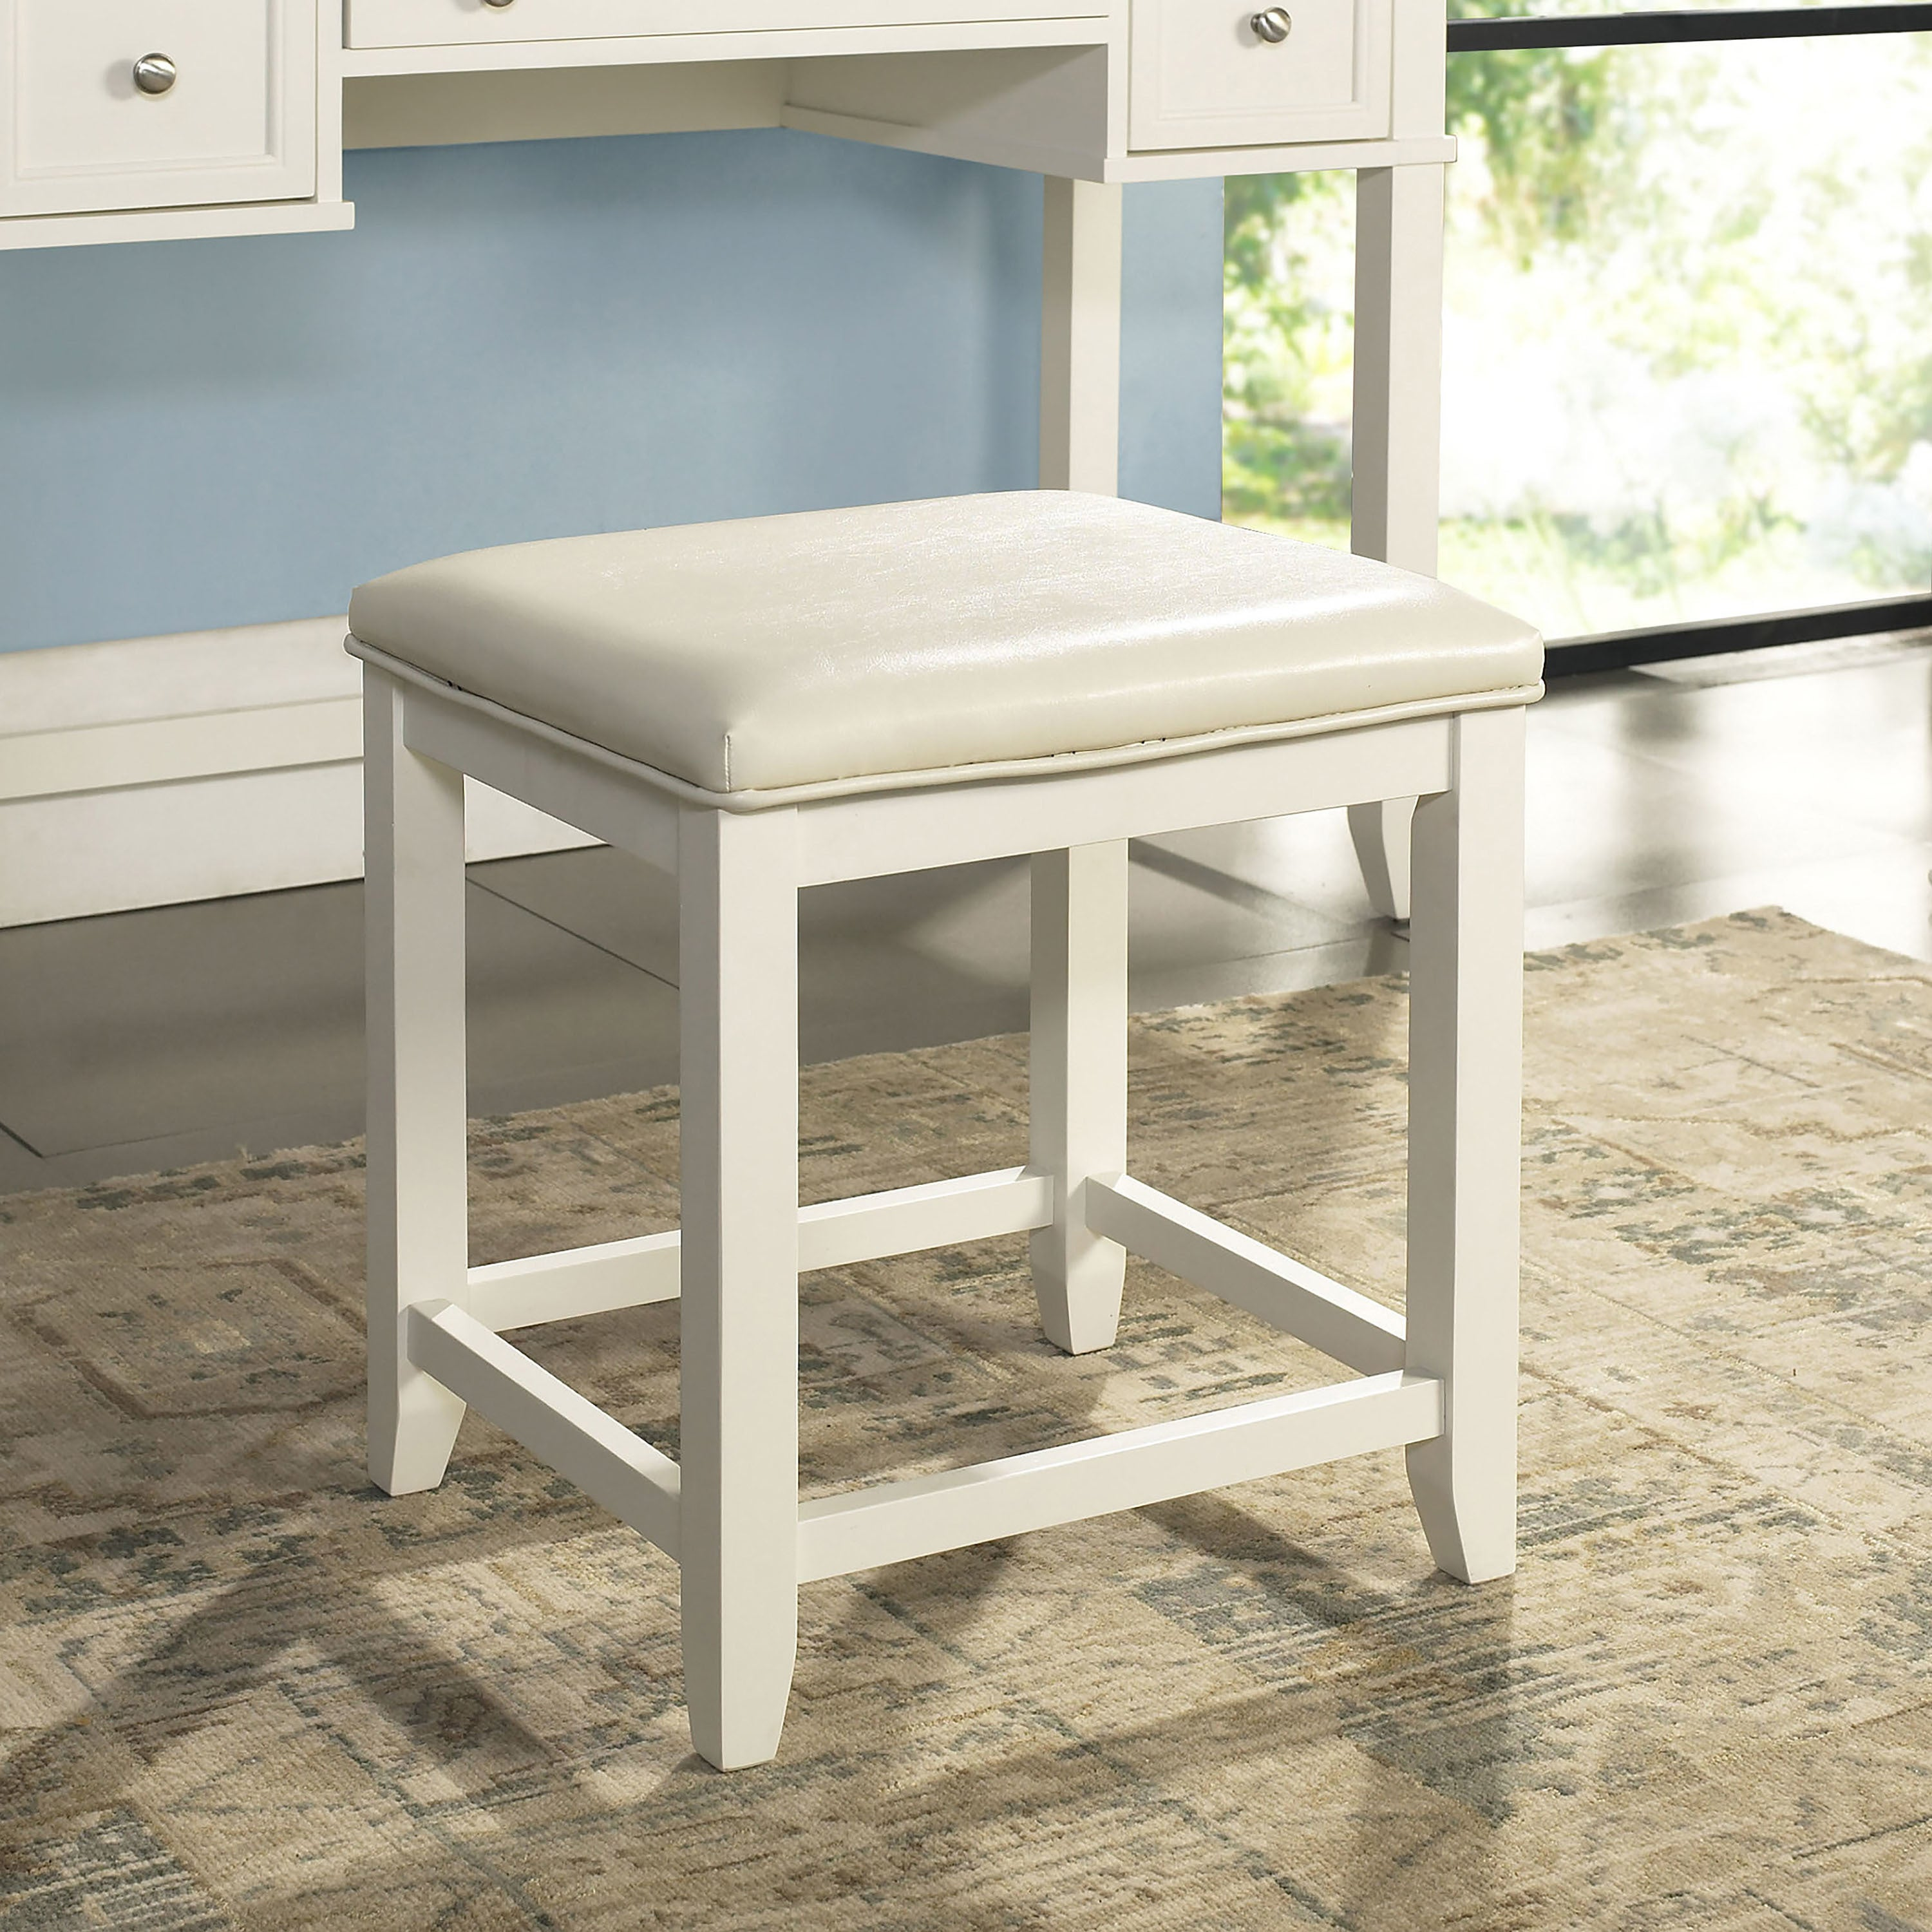 Excellent Vista Vanity Stool In White Alphanode Cool Chair Designs And Ideas Alphanodeonline